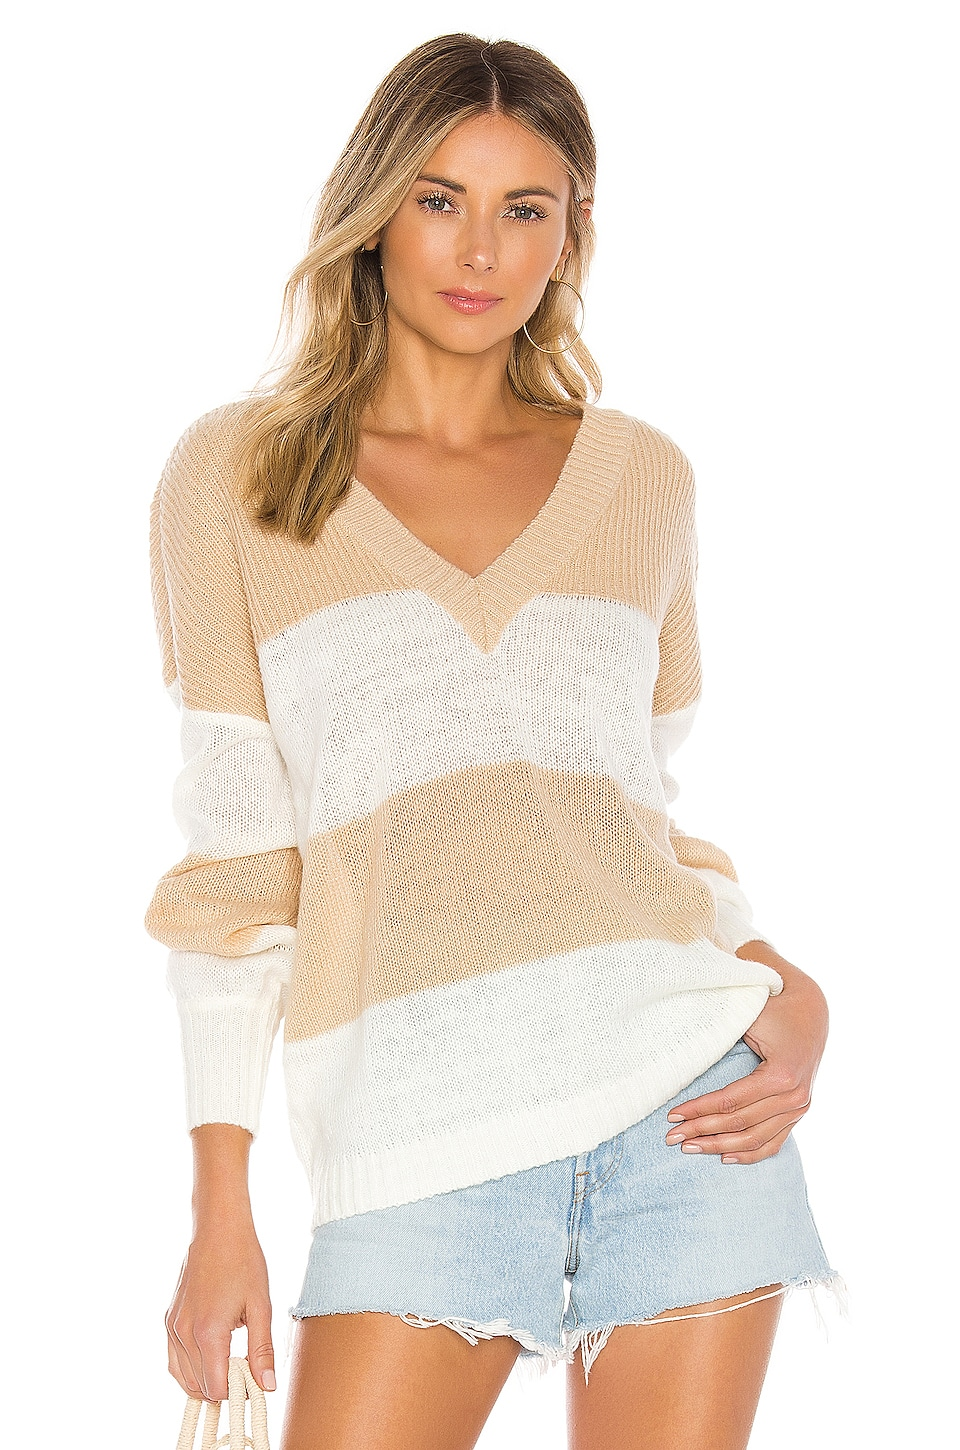 House of Harlow 1960 X REVOLVE Bali V Neck in Cappuccino